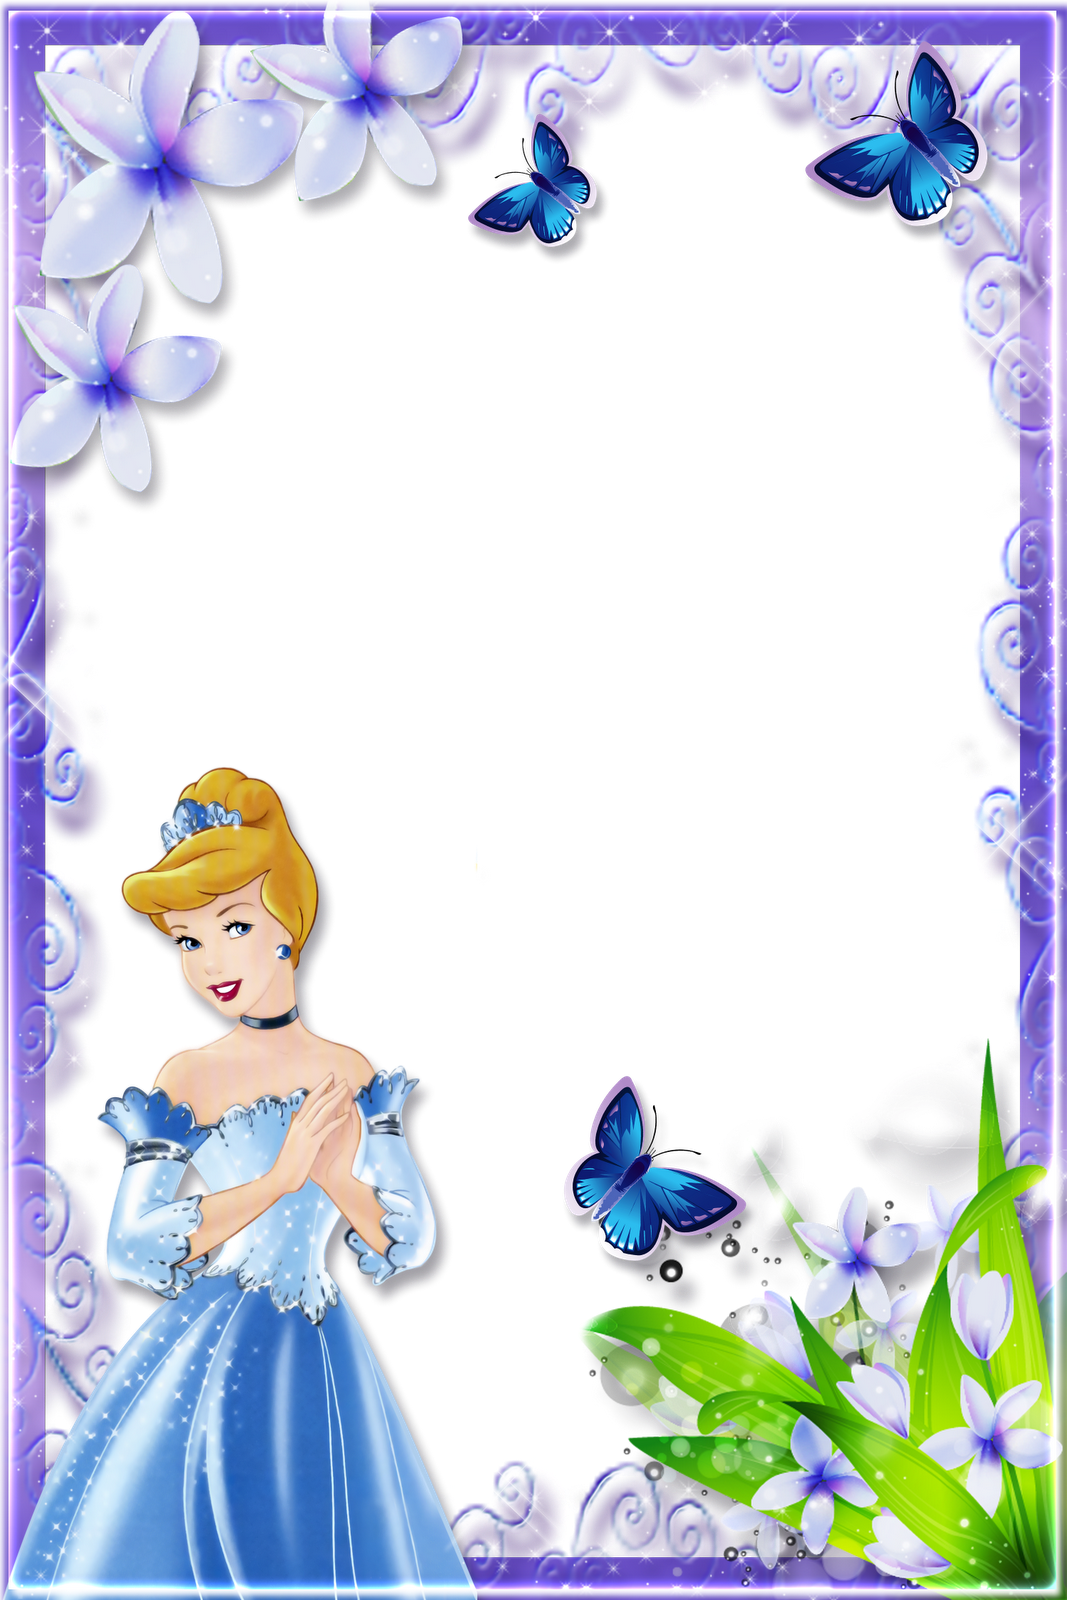 Disney Frames frames png princesas disney #7 central photoshop